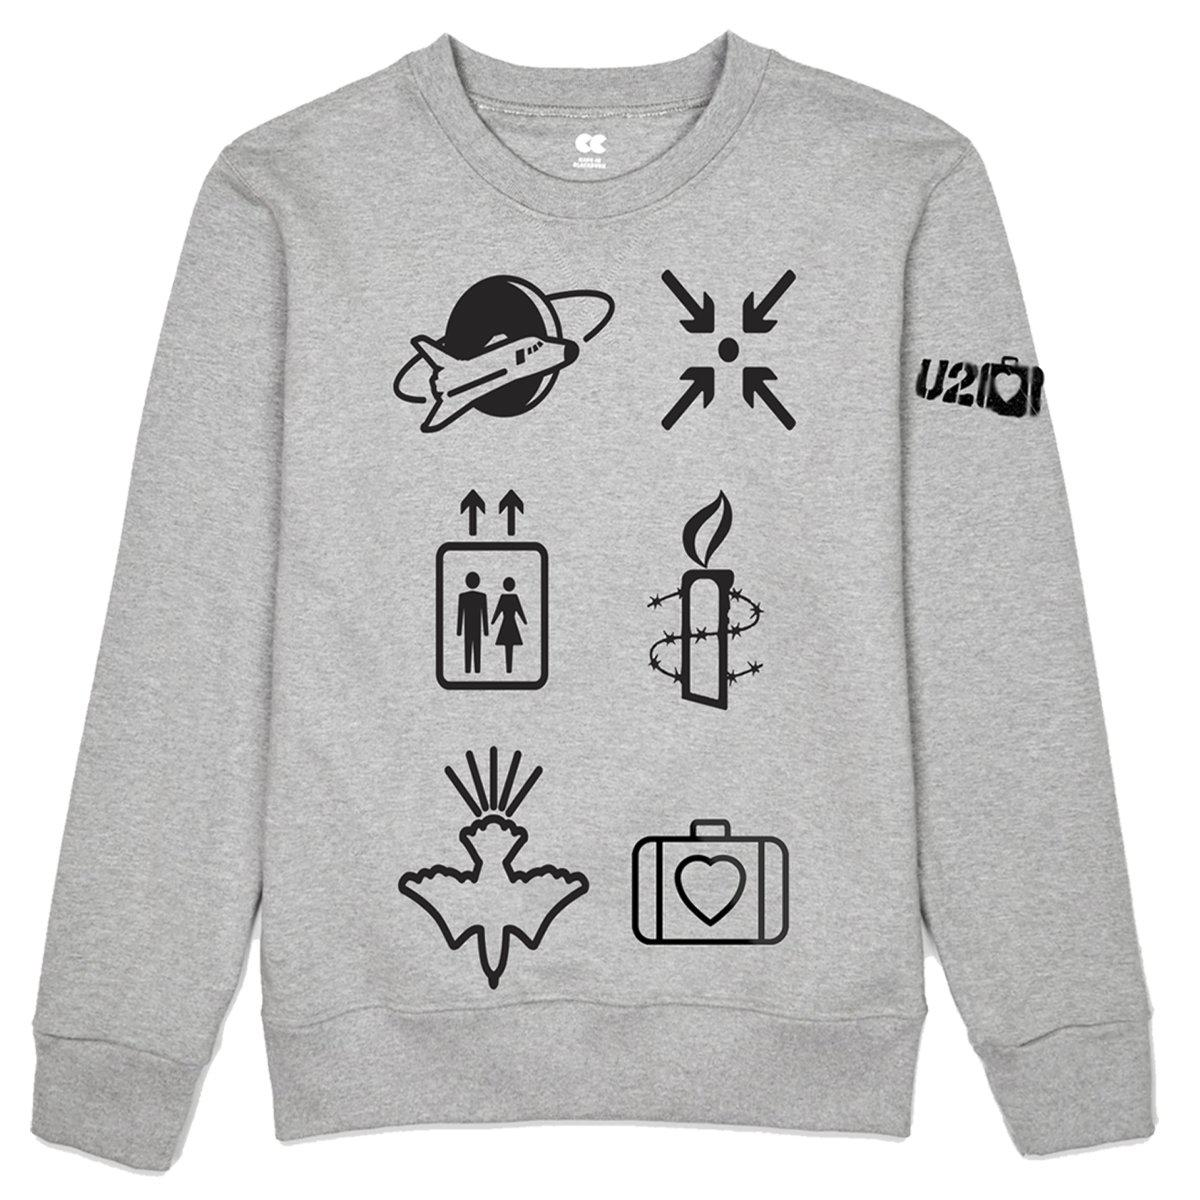 Elevation Symbols Grey Crewneck Sweatshirt